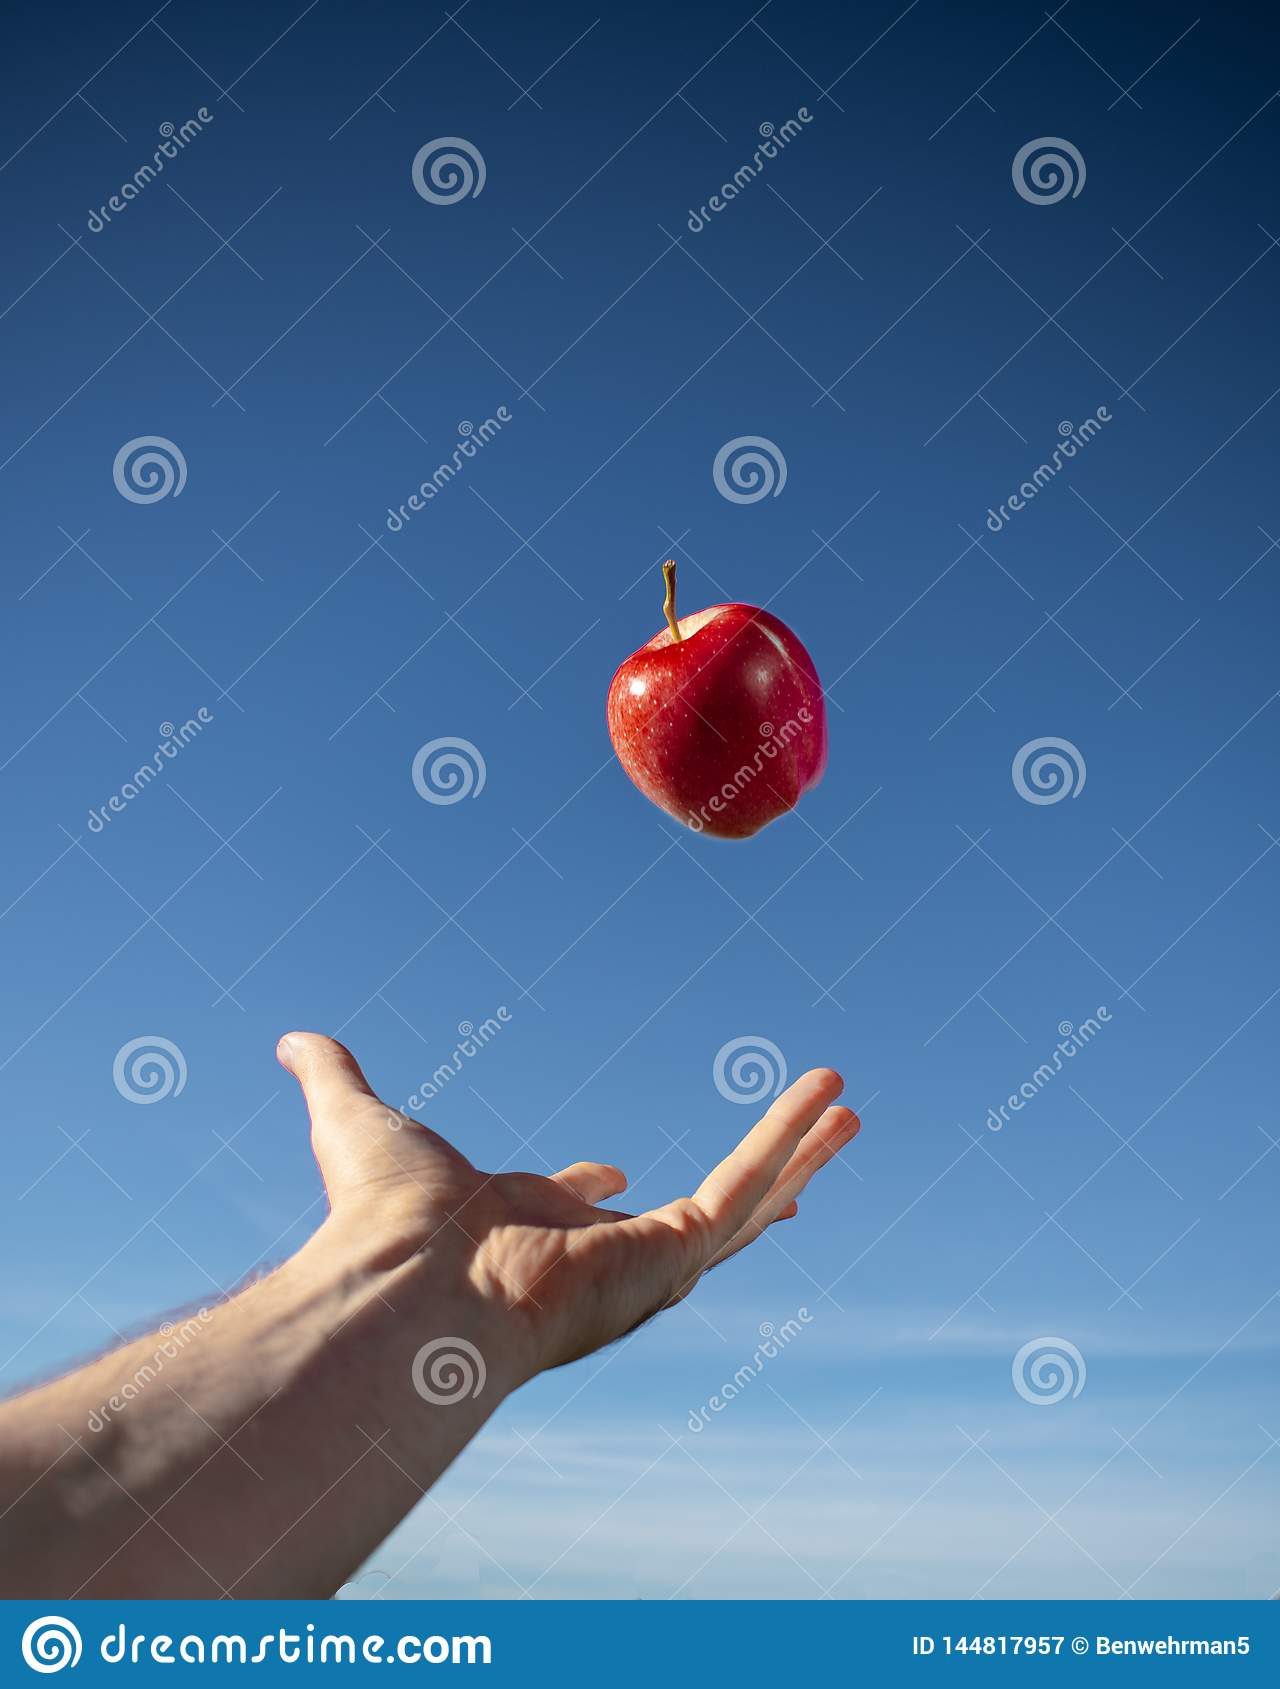 Red Apple Floating in the Air